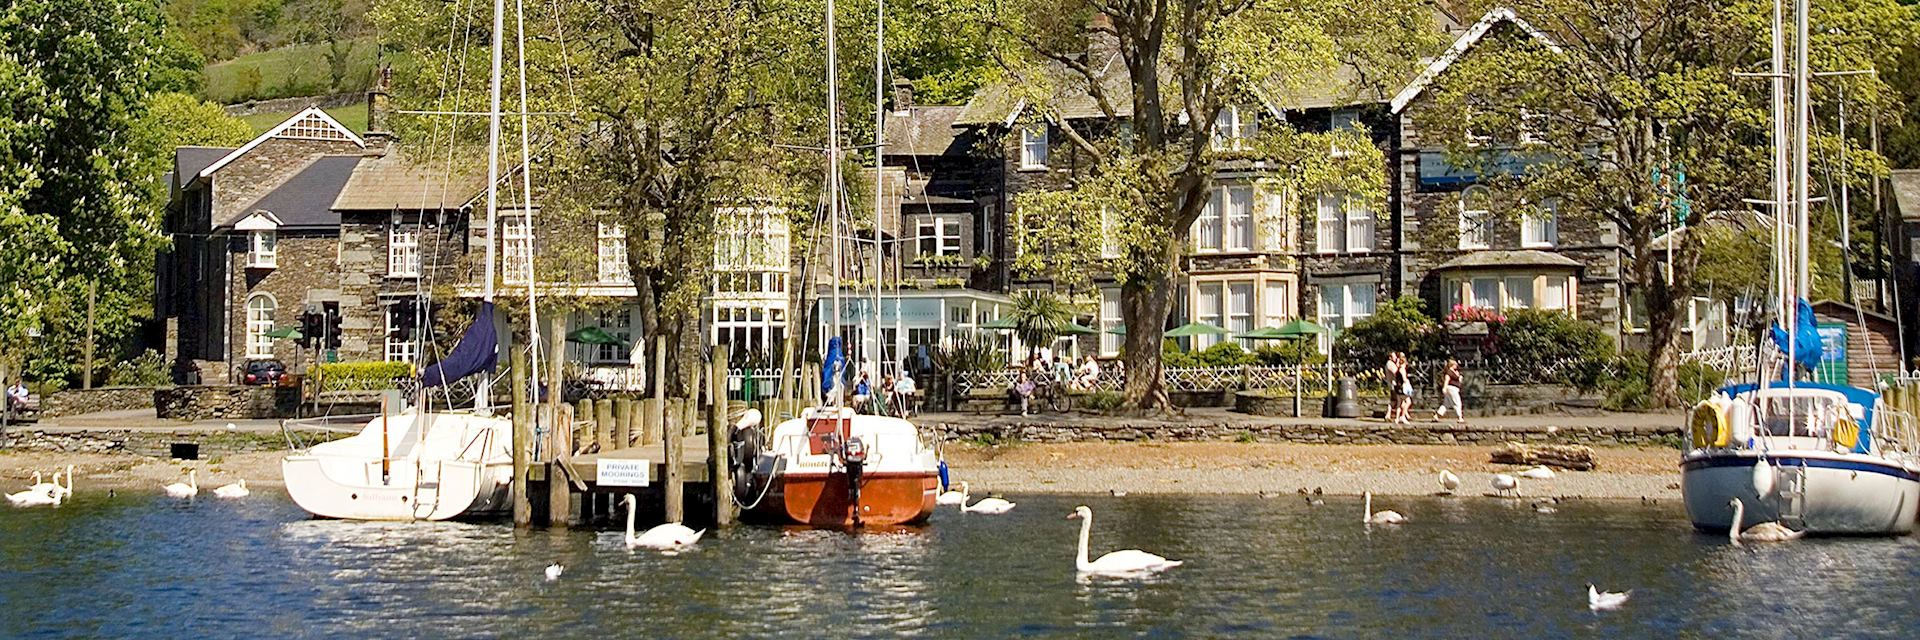 The Waterhead, The Lake District